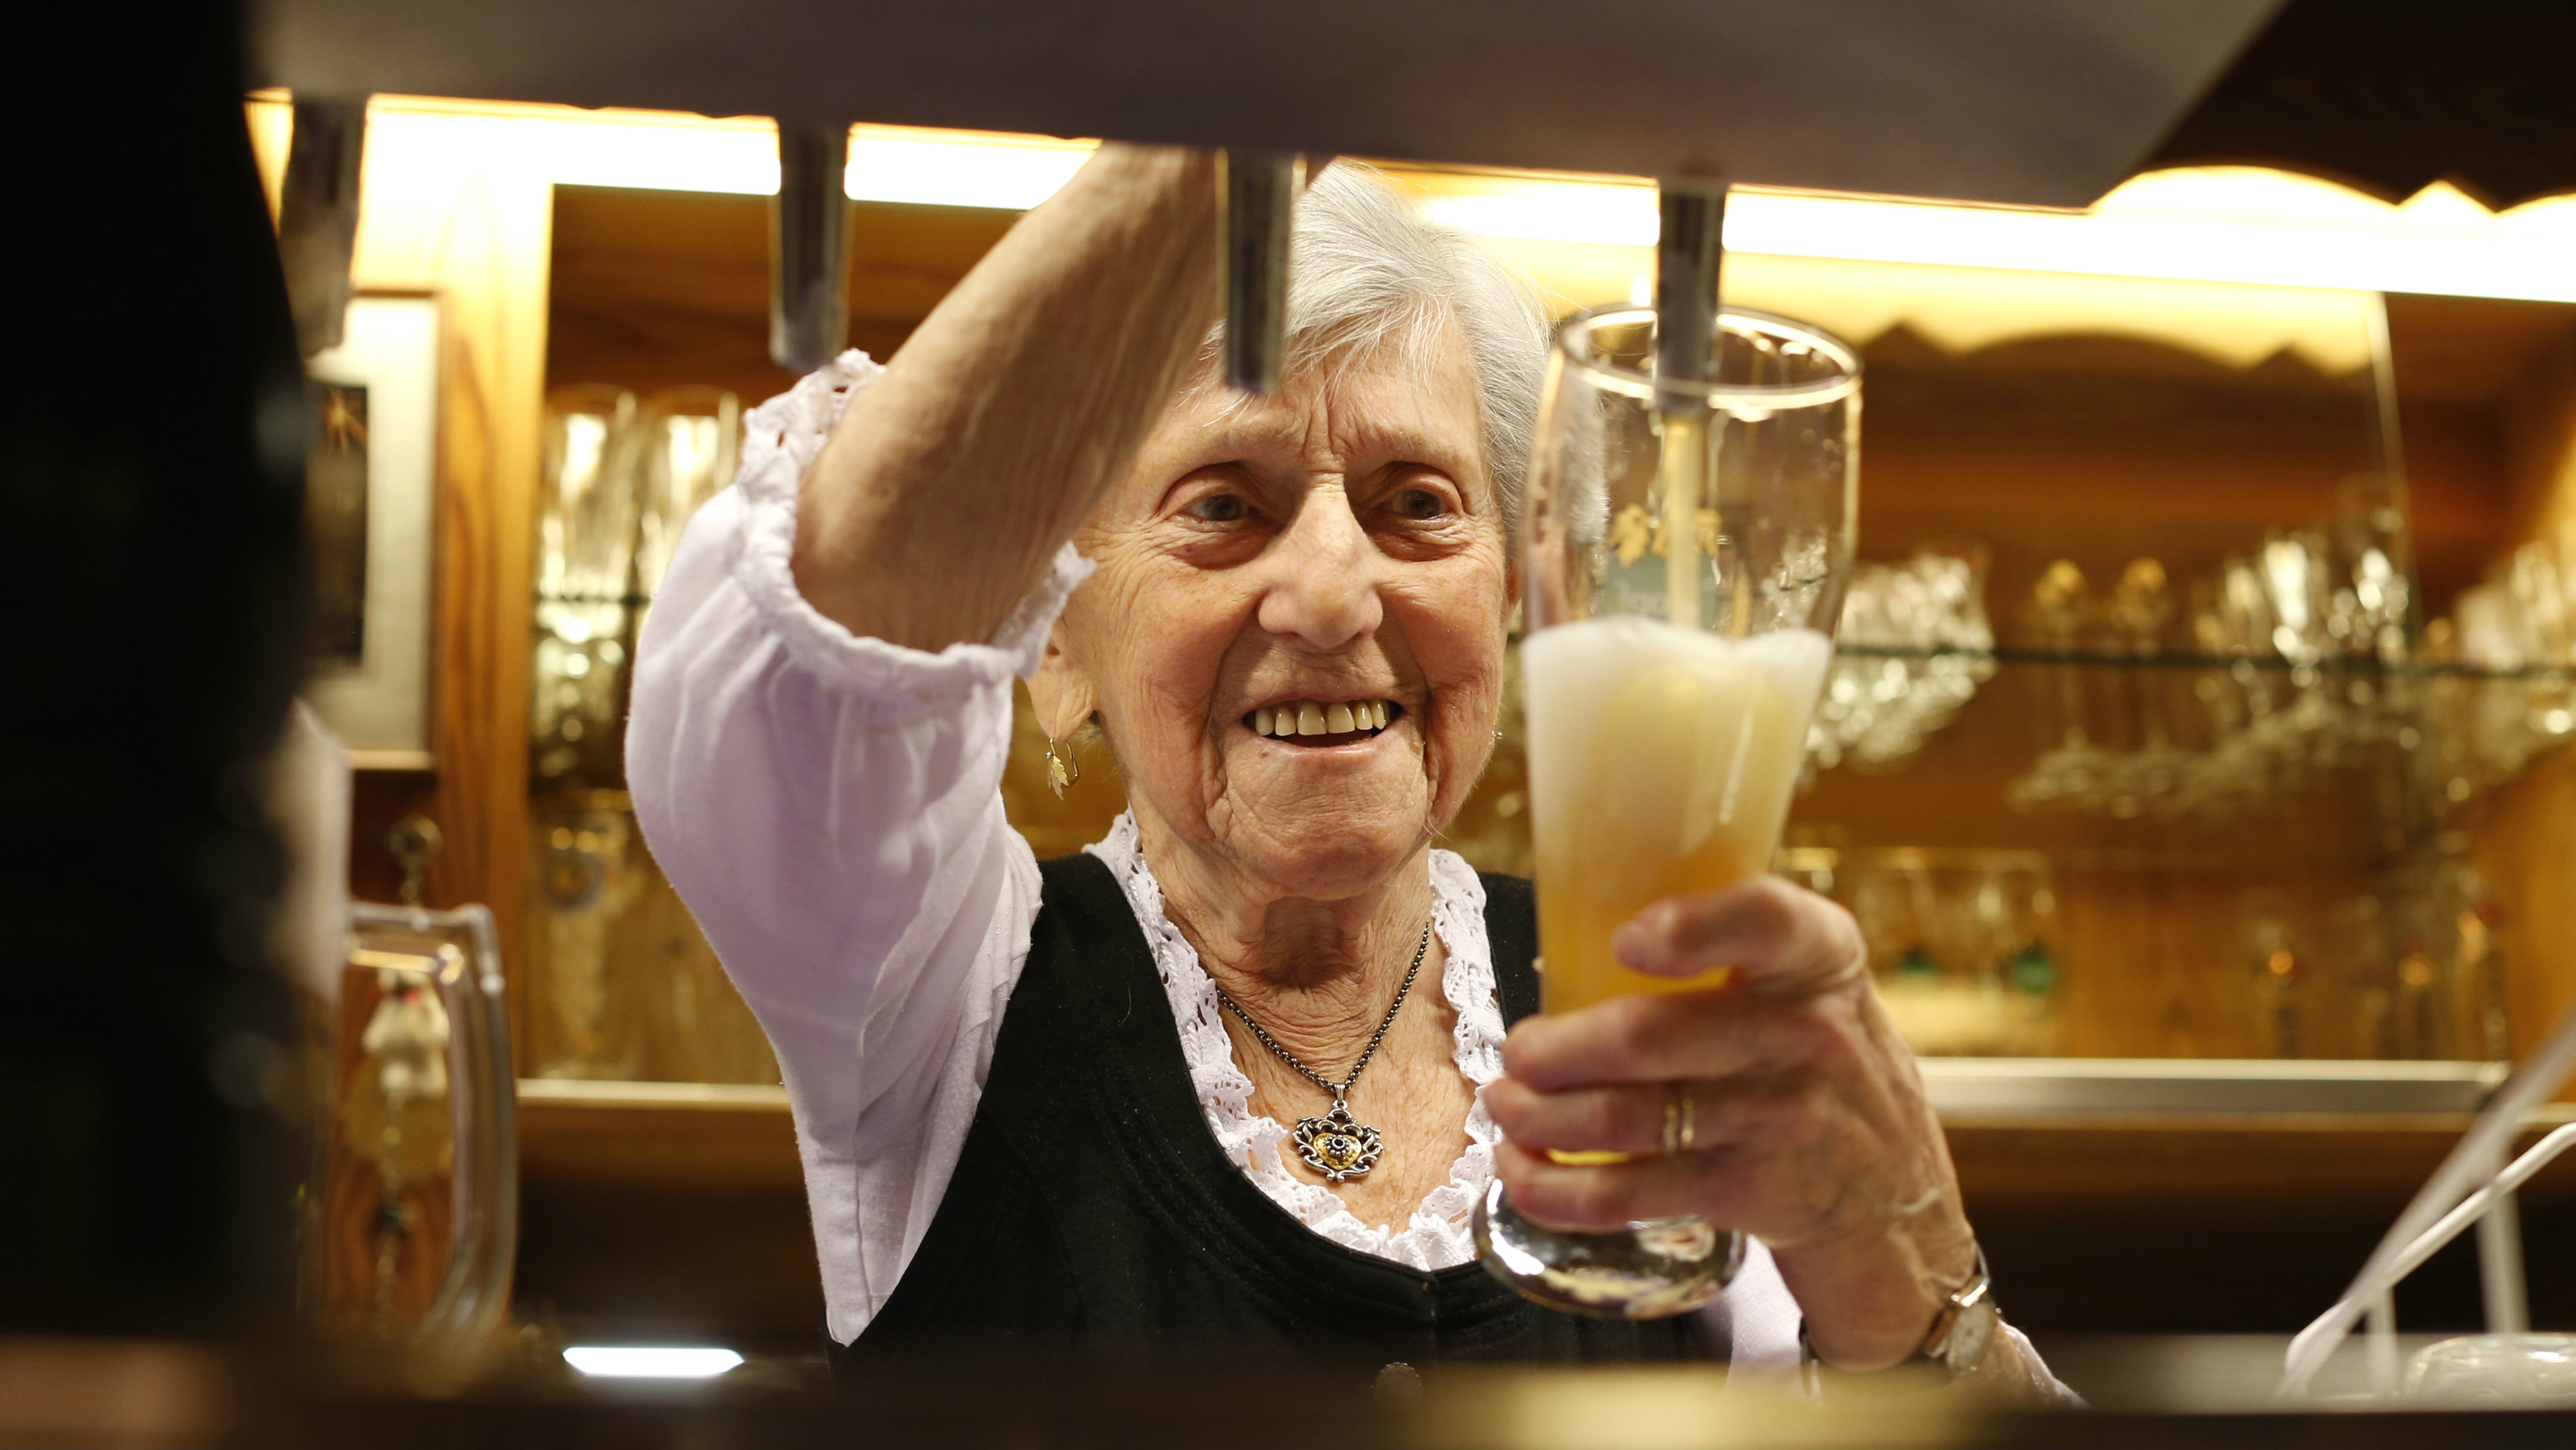 woman pouring beer